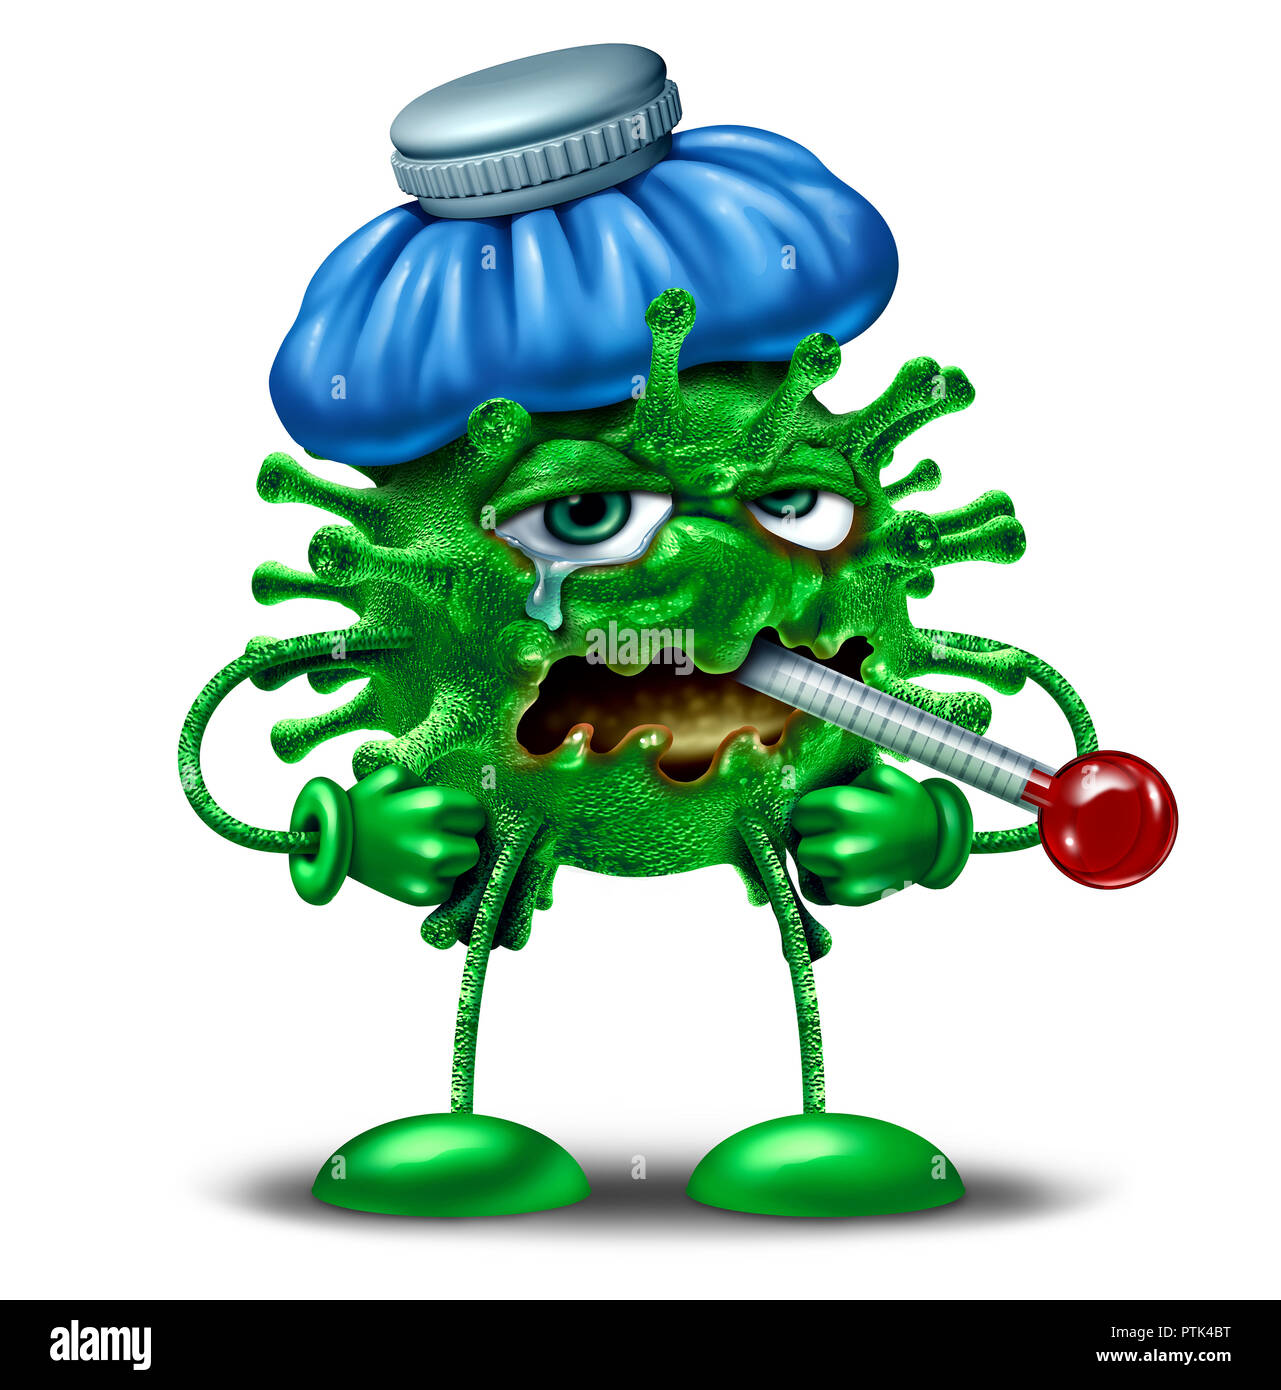 Winter flu character as an influenza or virus infection symbol as a sick feverish cartoon pathogen cell with an ice bag and thermometer. - Stock Image